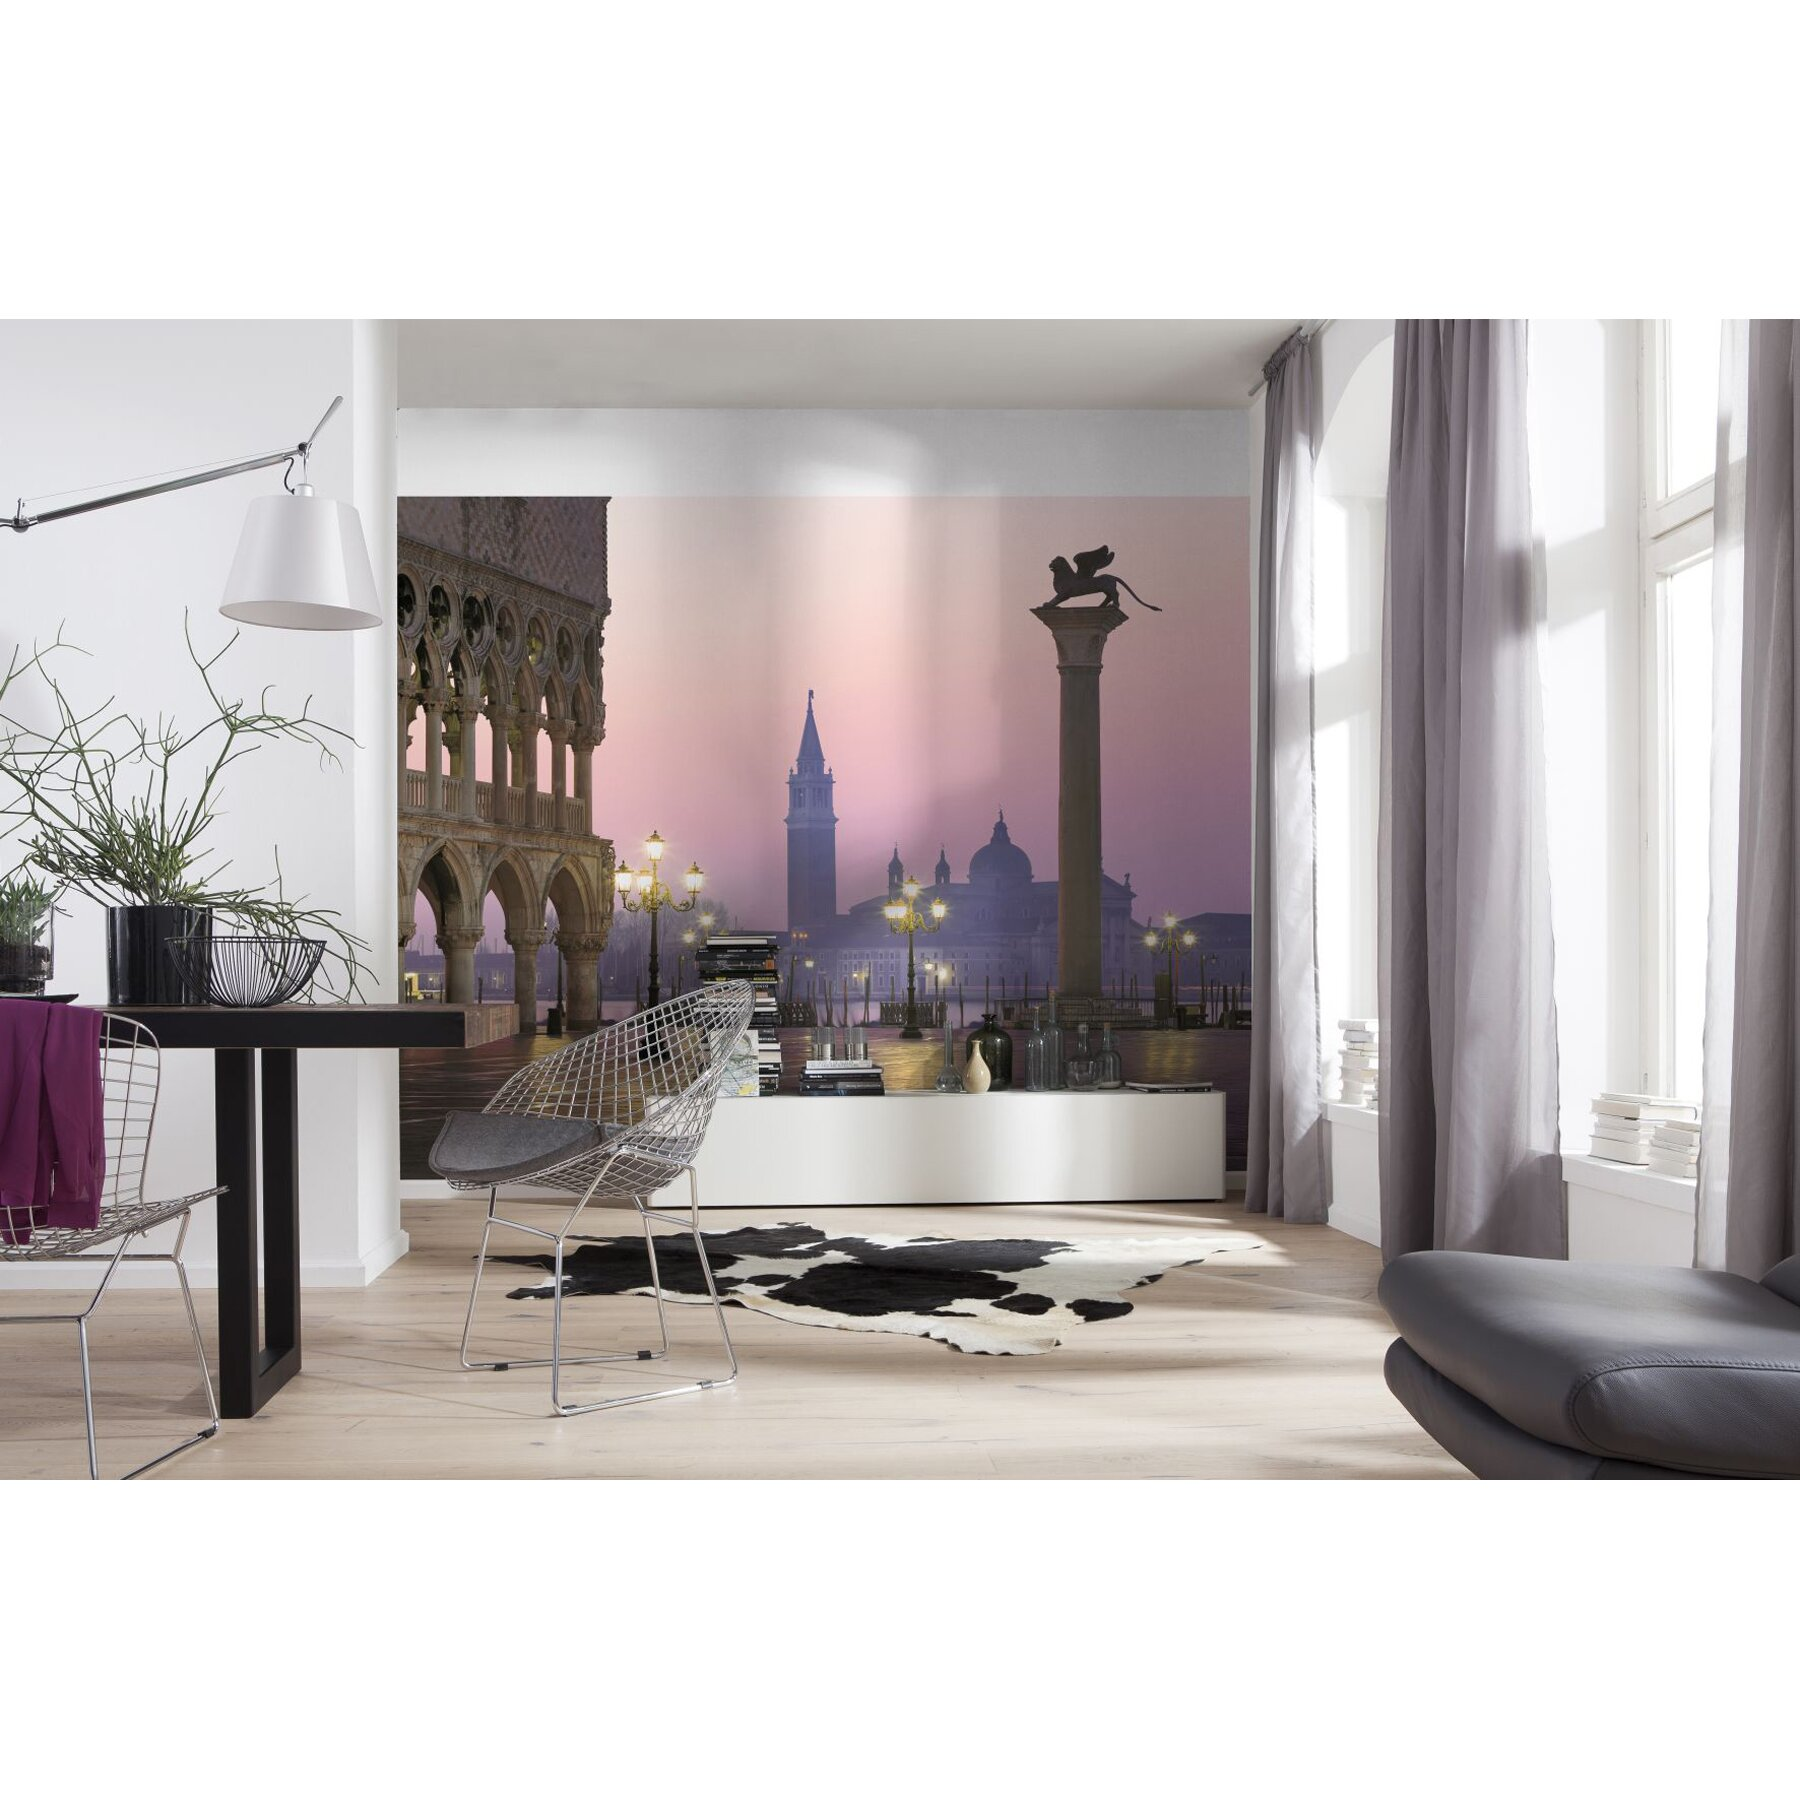 Brewster home fashions komar san marco wall mural for Brewster home fashions wall mural